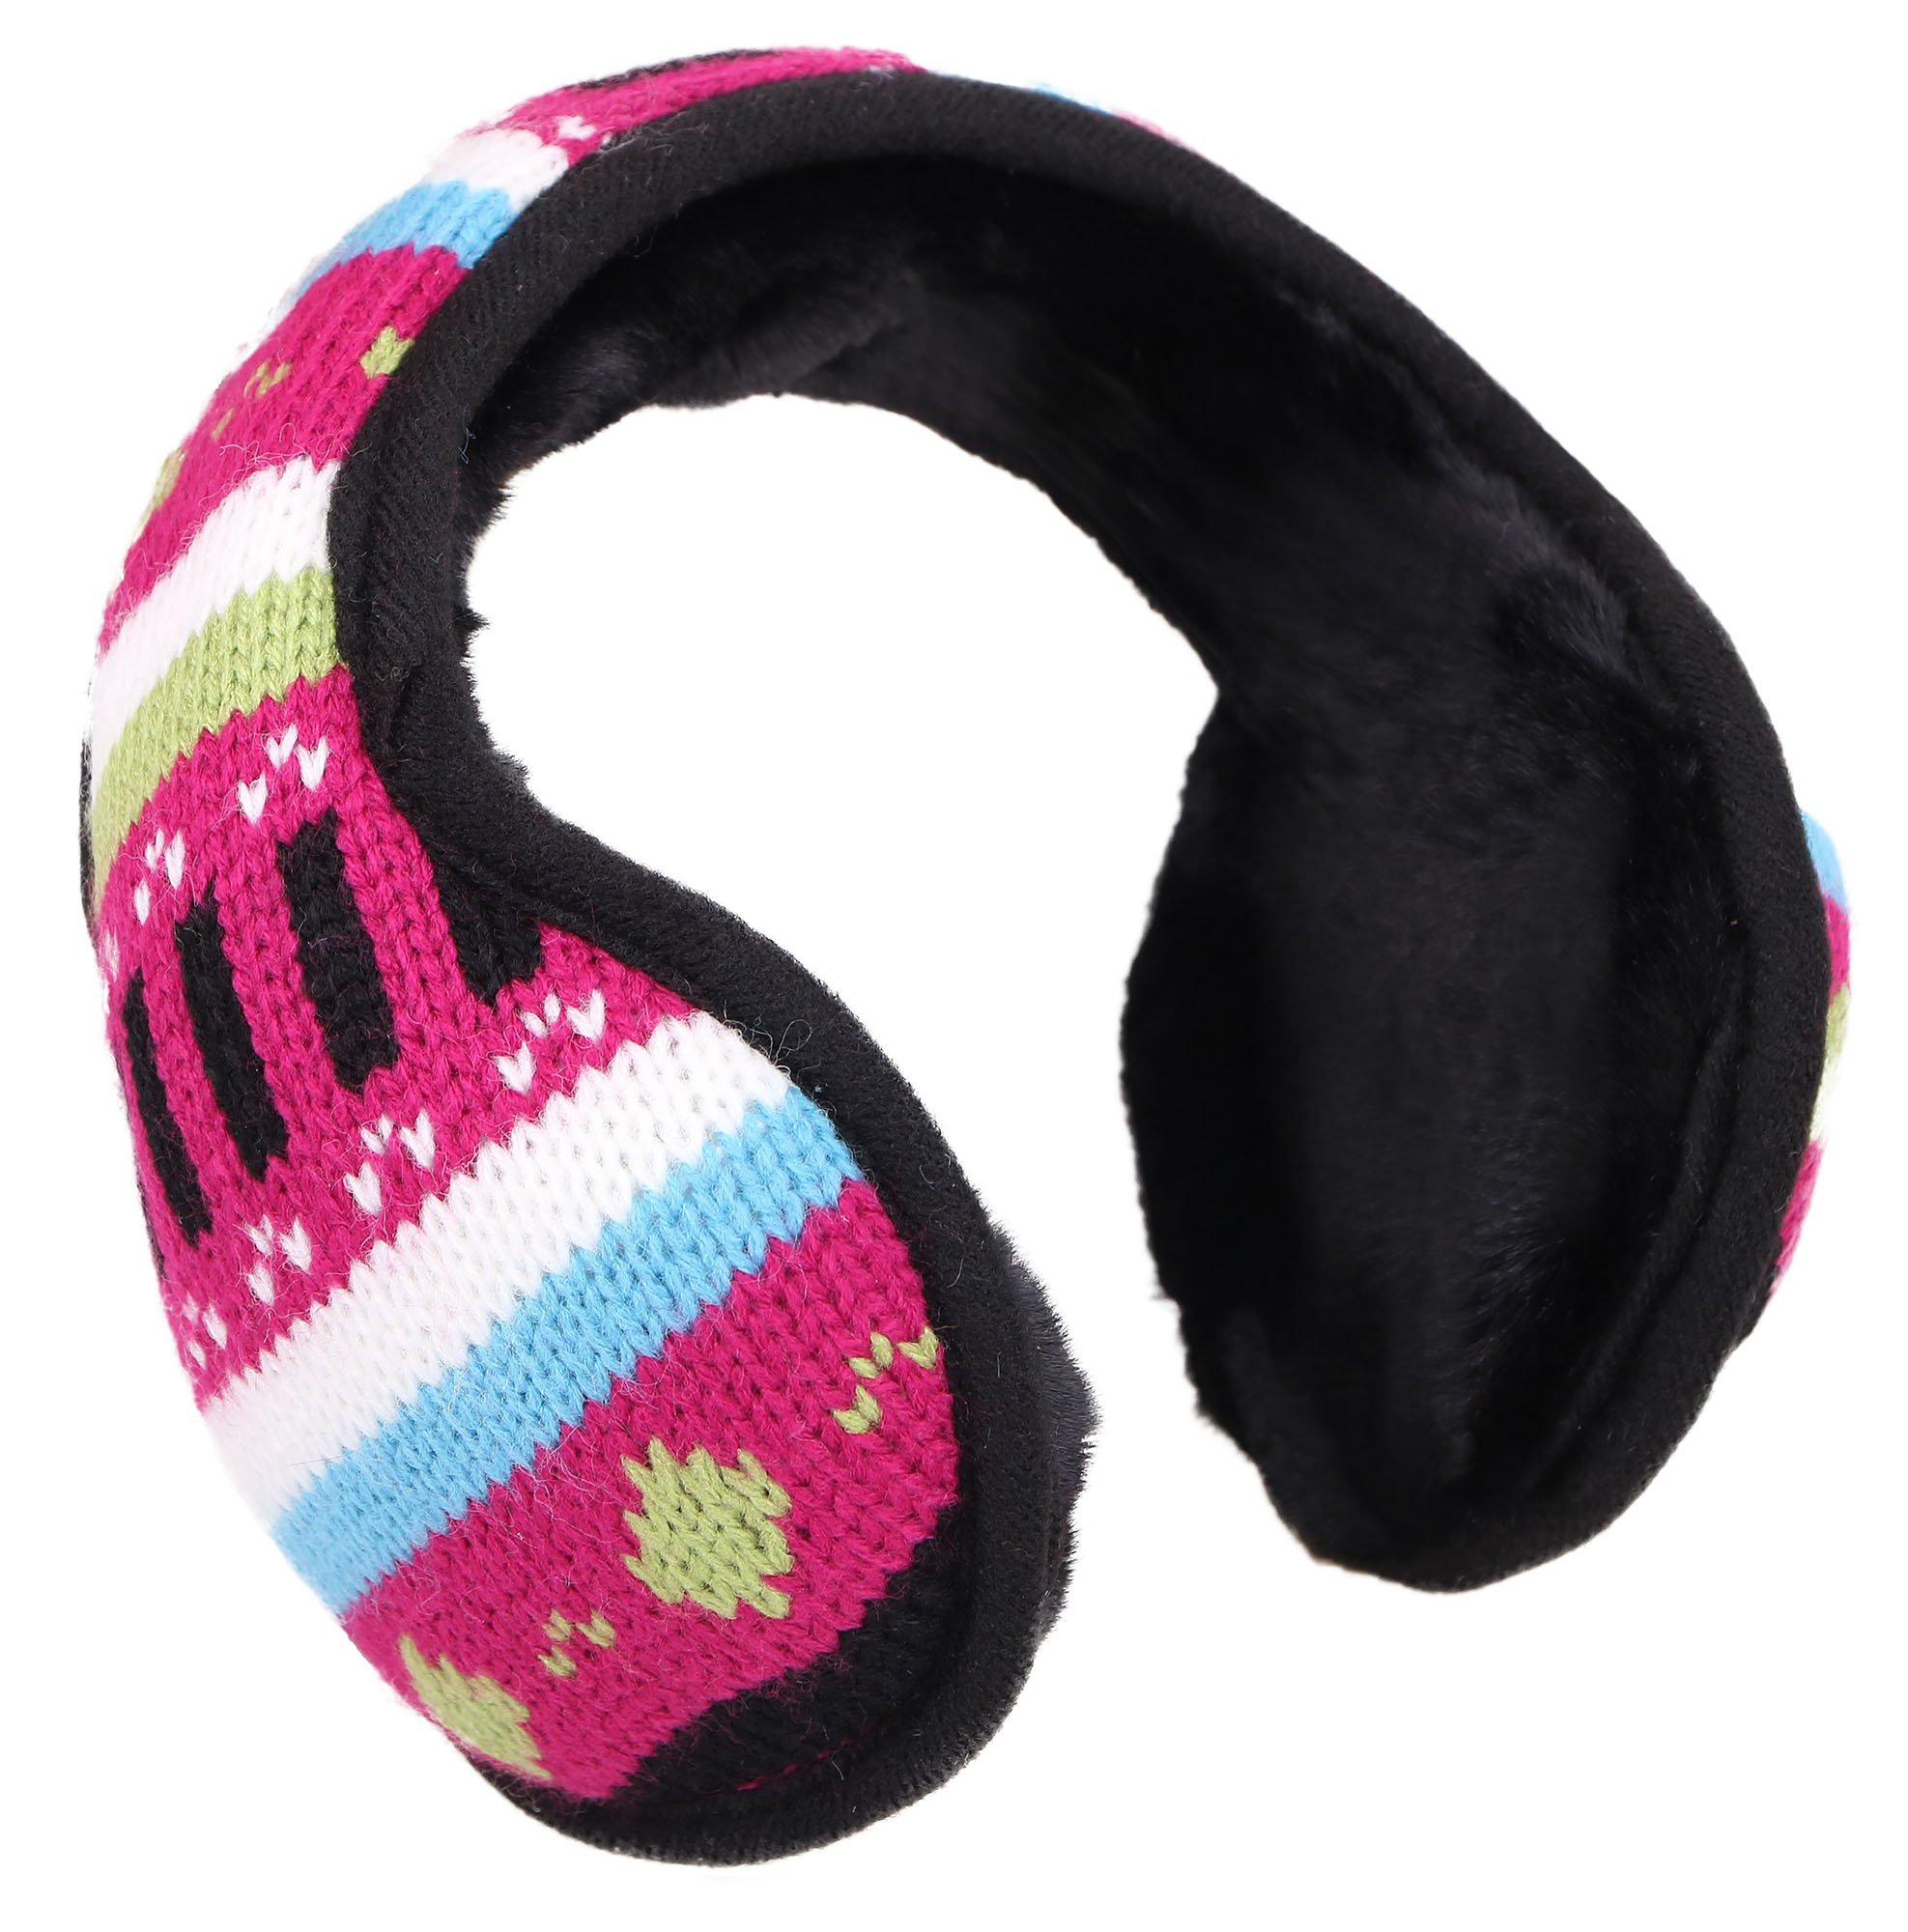 Women's Knit Earmuffs Earwarmer Fur Lined Winter Outdoor Ear Muffs, Pattern Pink